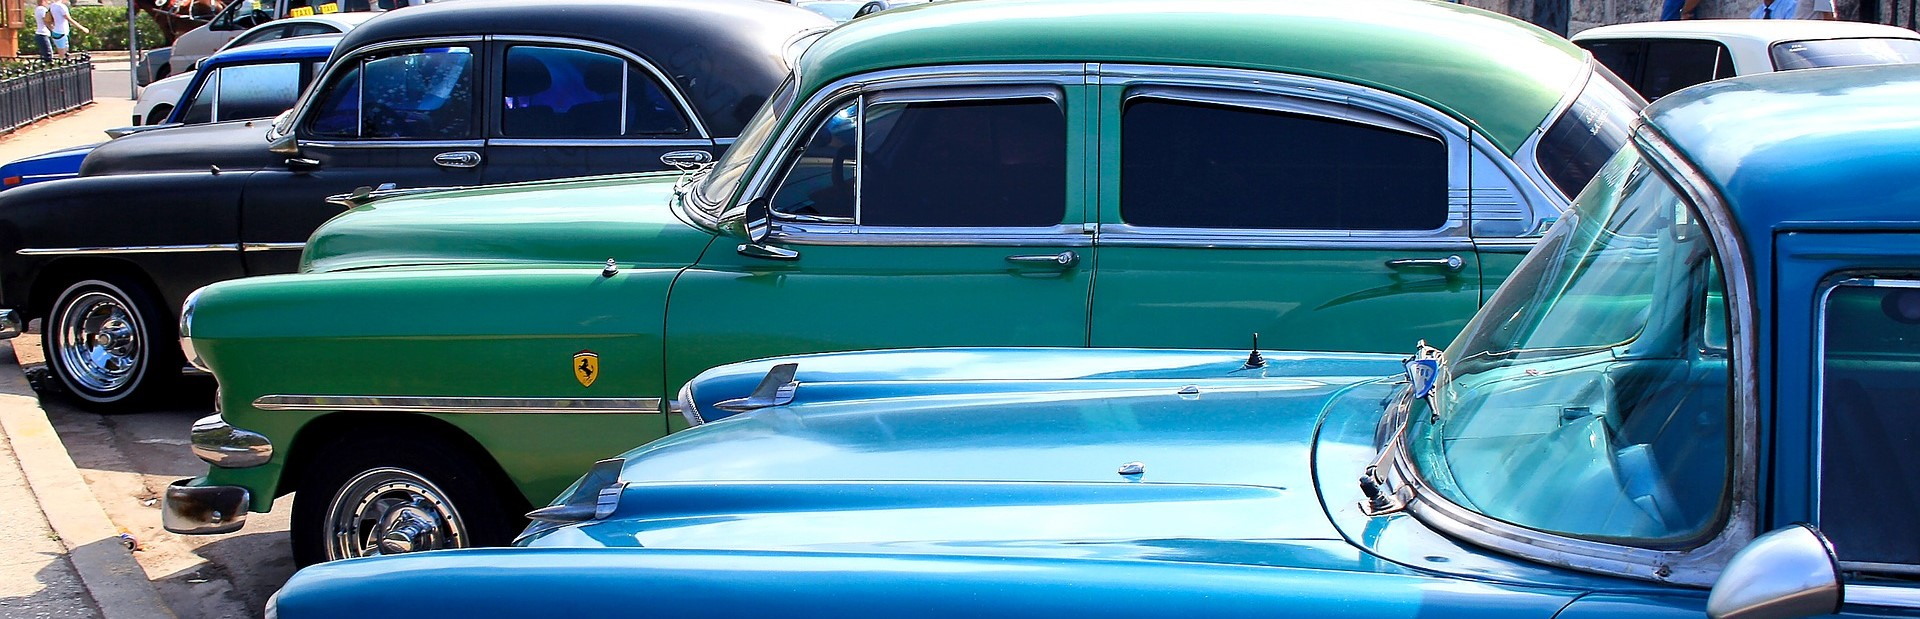 Vintage Classic Cars in Columbia, Maryland   Breast Cancer Car Donations